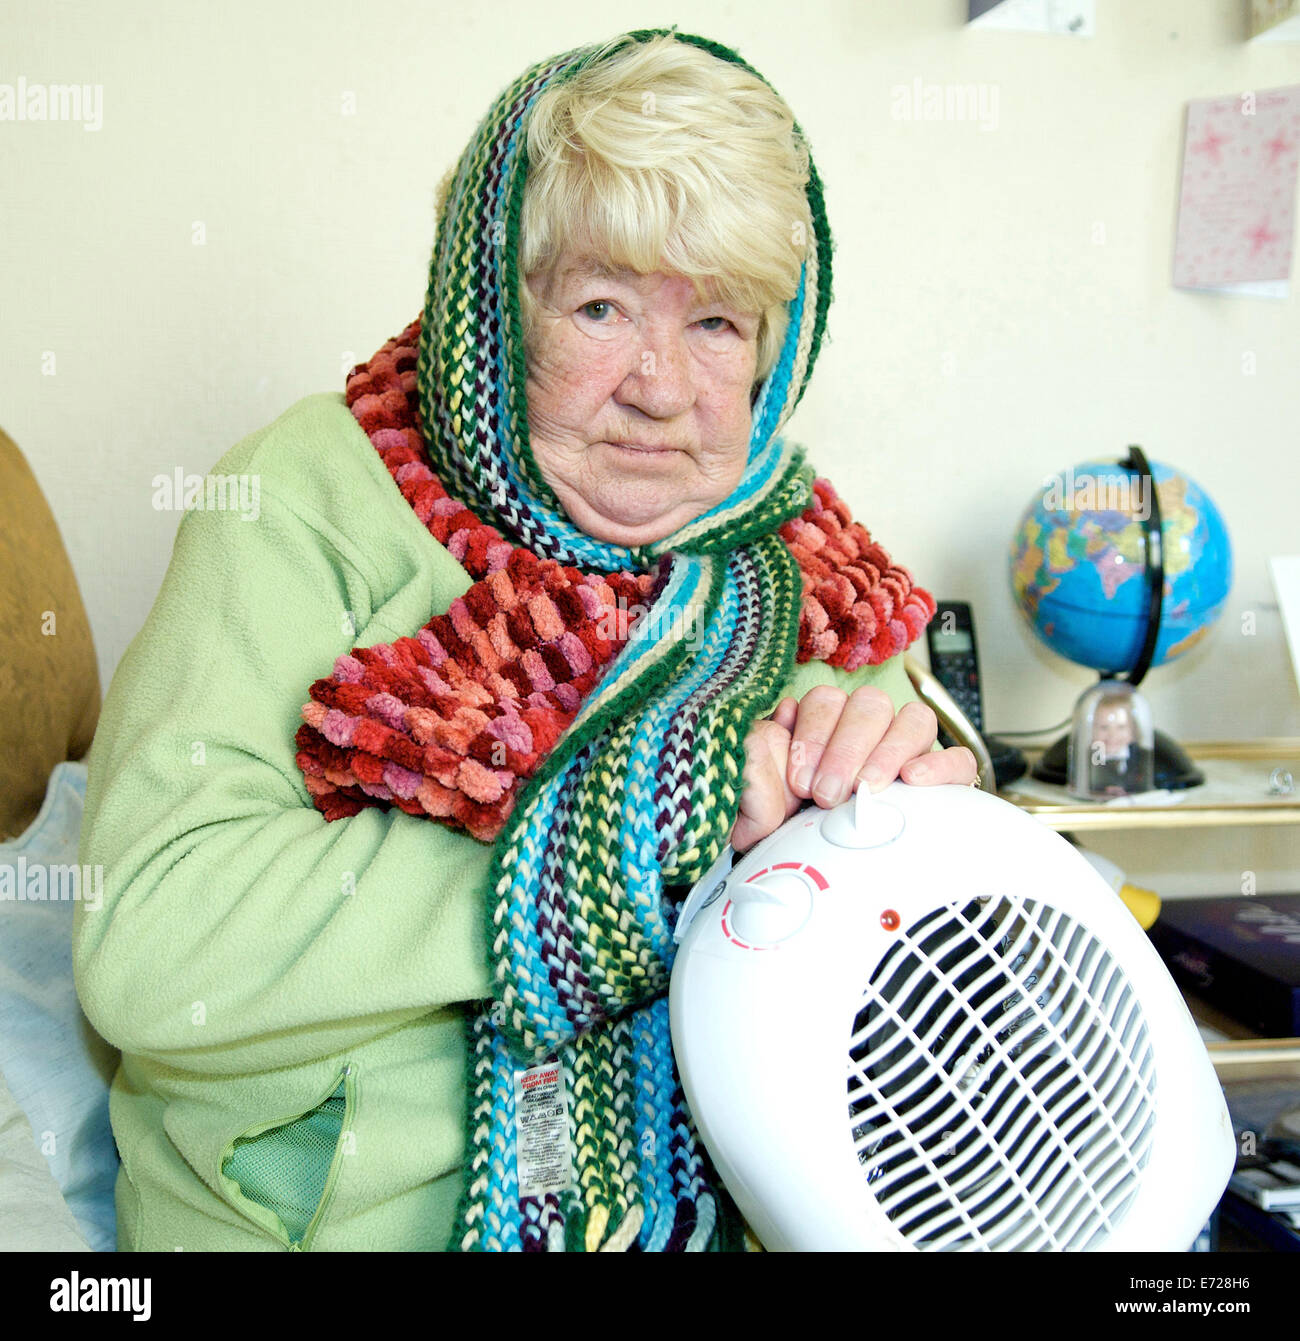 Old lady trying to keep warm in a cold winter - Stock Image